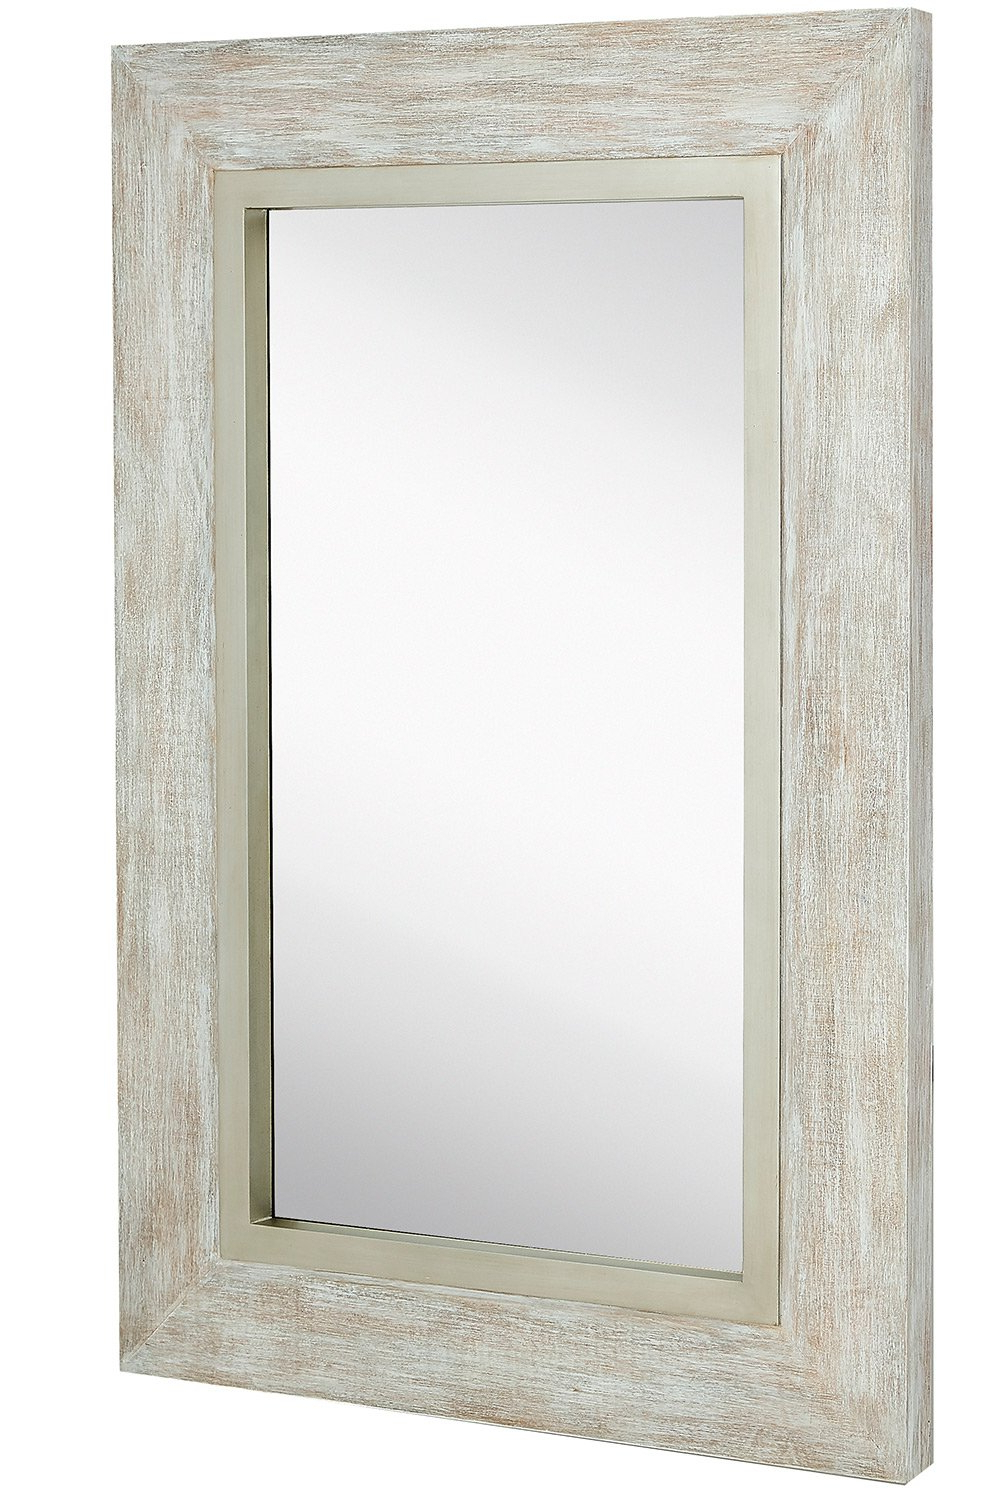 2020 Hamilton Hills Large White Washed Framed Mirror (View 4 of 20)